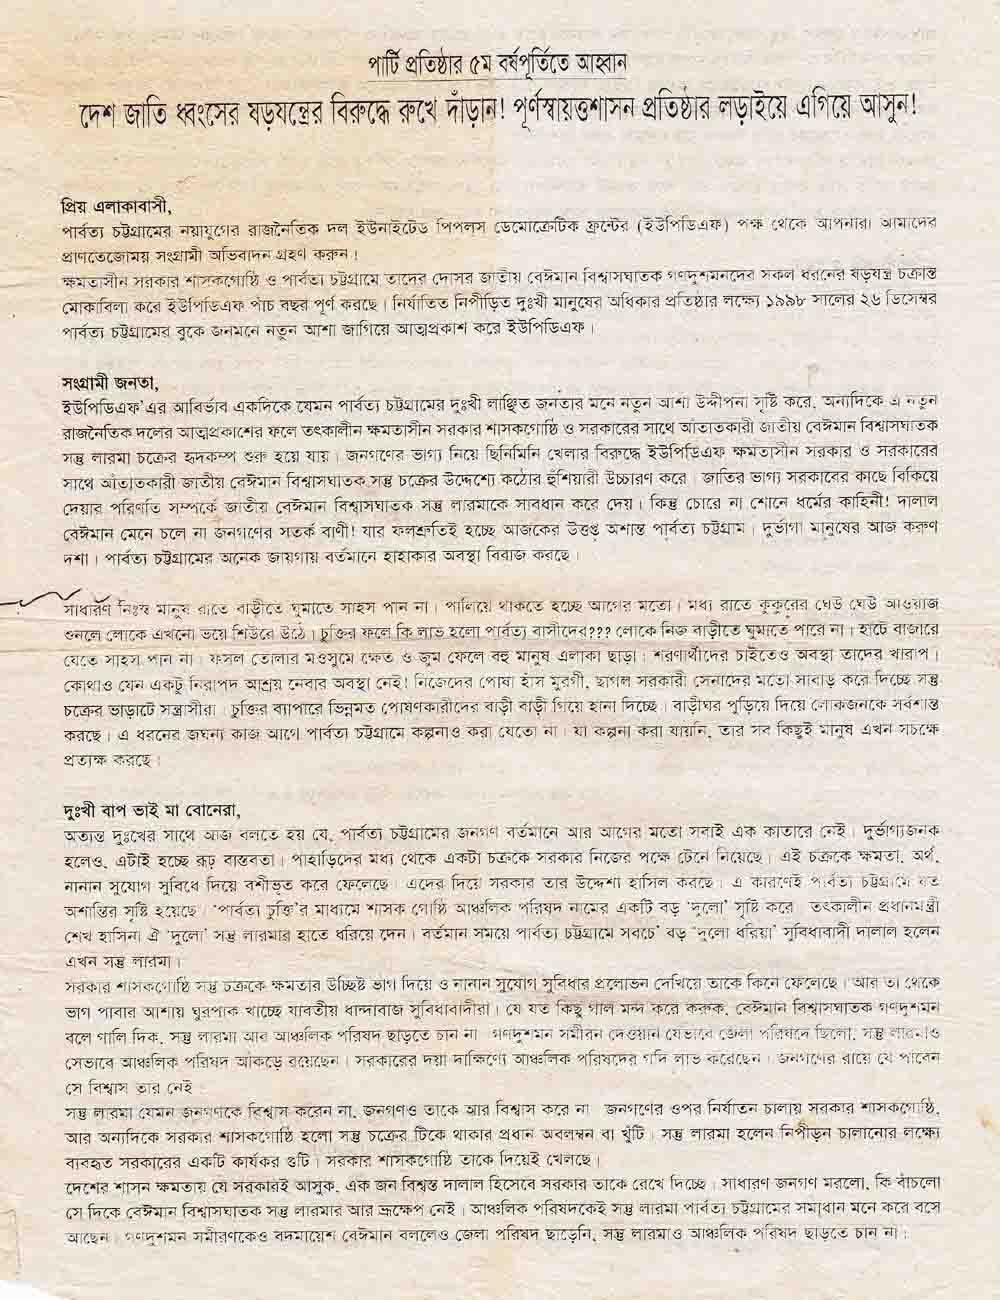 4. Leaflet on 5th founding anniversary, page-1